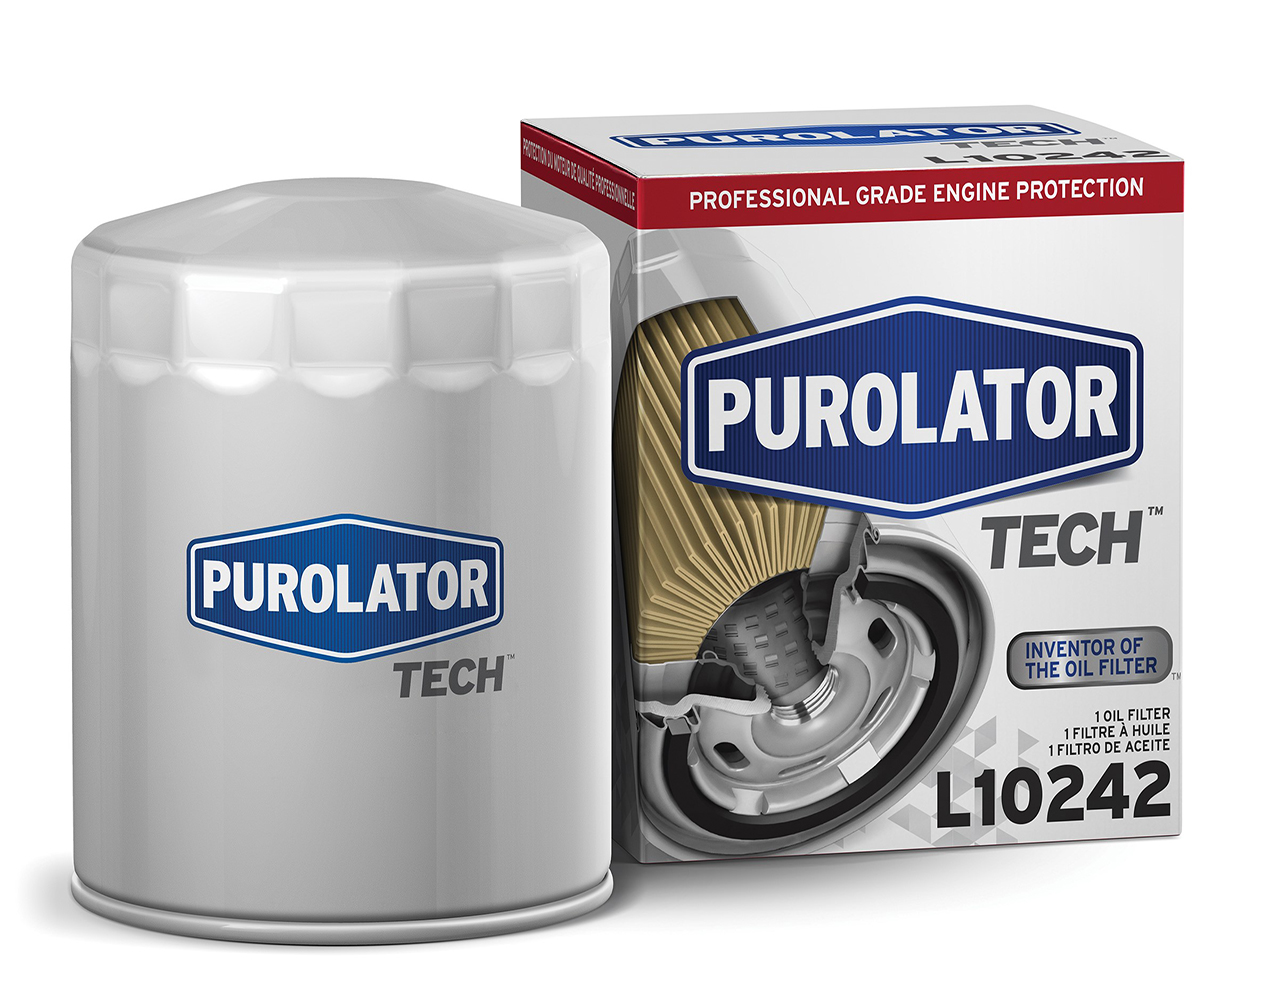 Purolator Call Center Auto Parts Buy Wise Auto Parts